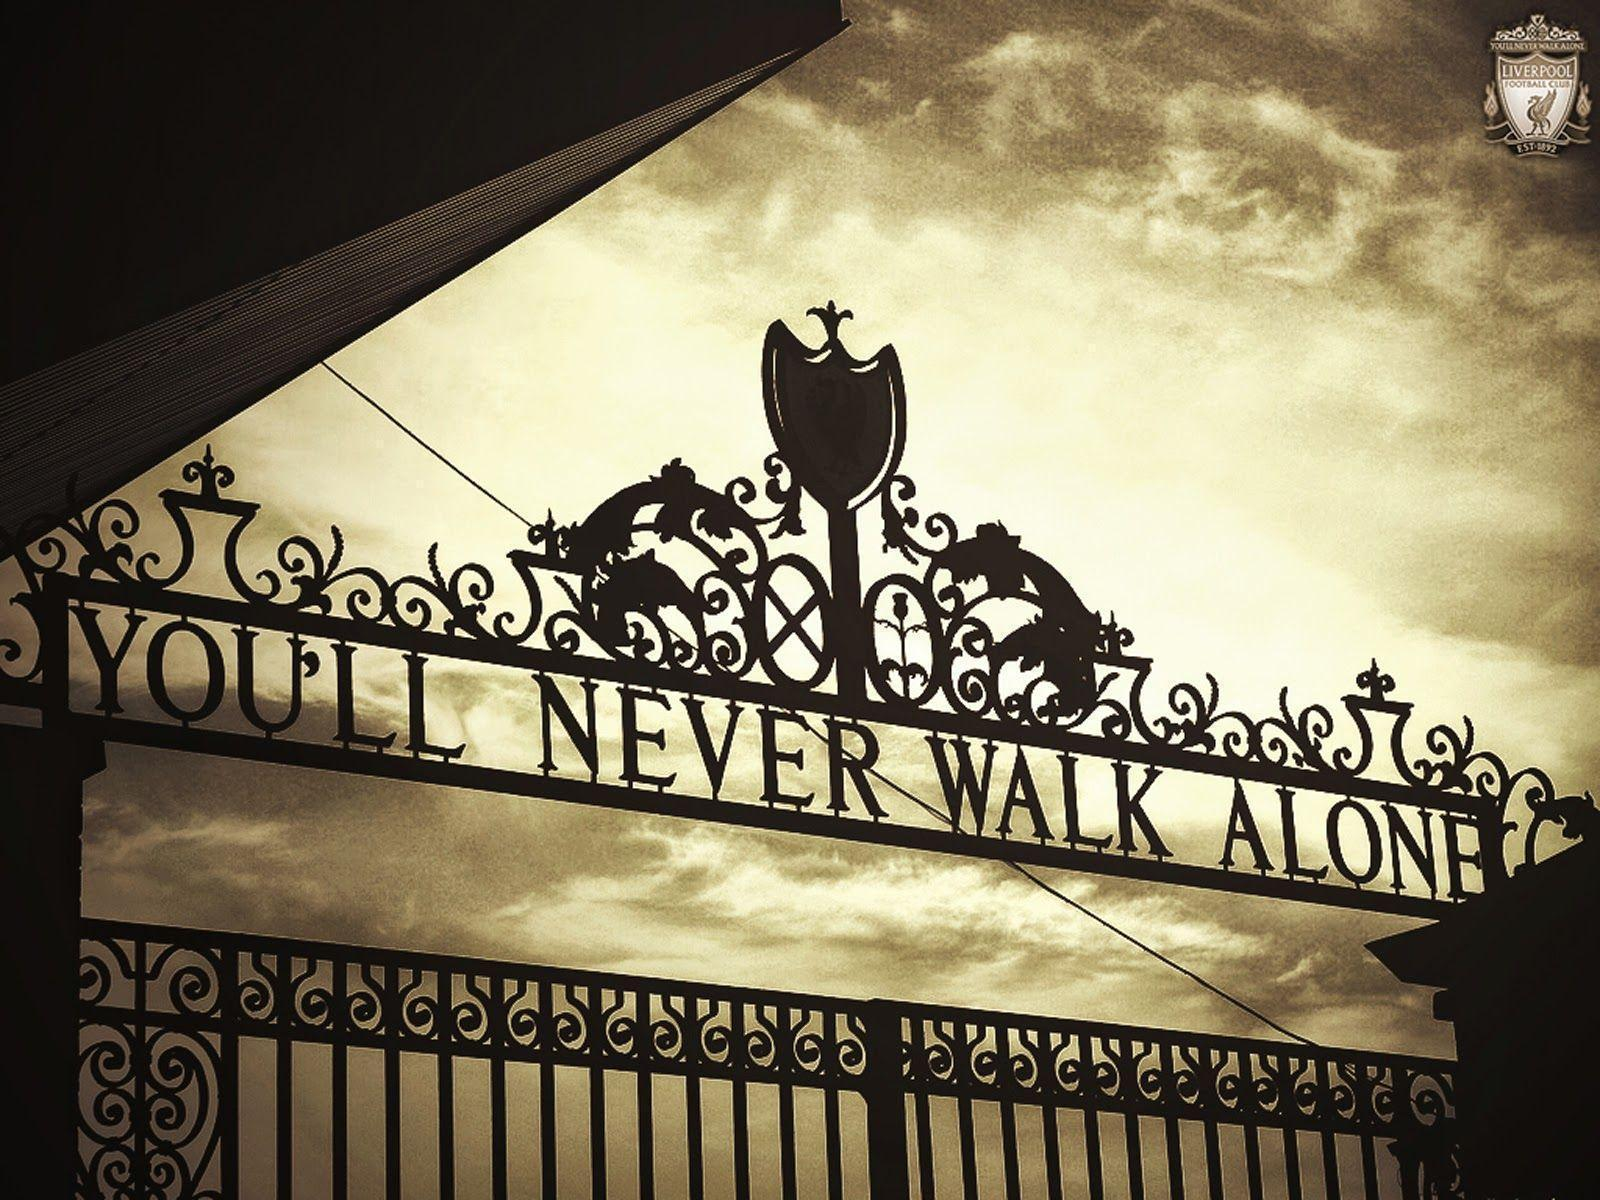 GATE 2019 Image: Liverpool Wallpapers 2017